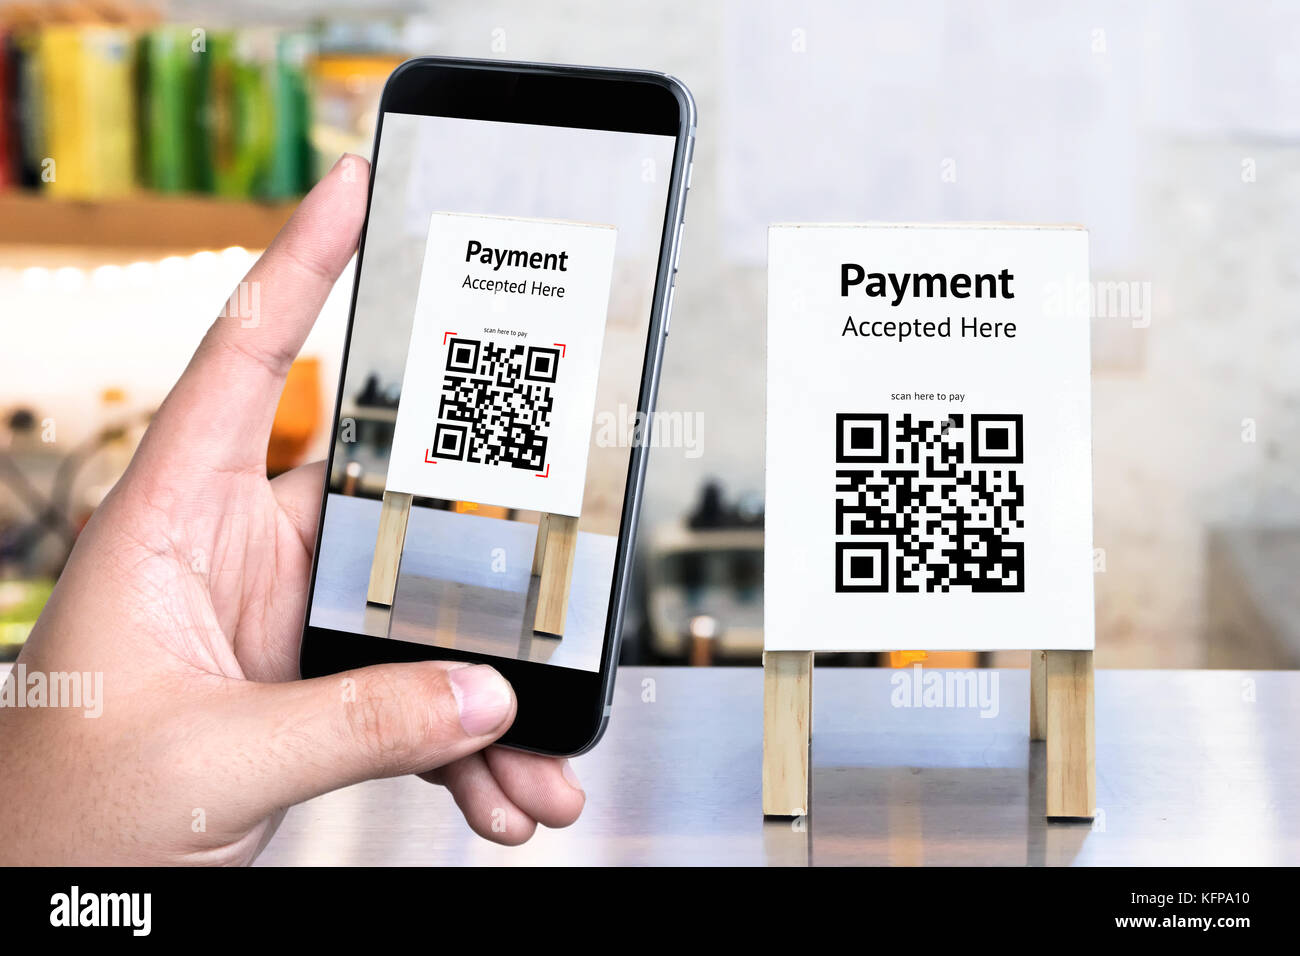 Qr Code Payment Online Shopping Cashless Technology